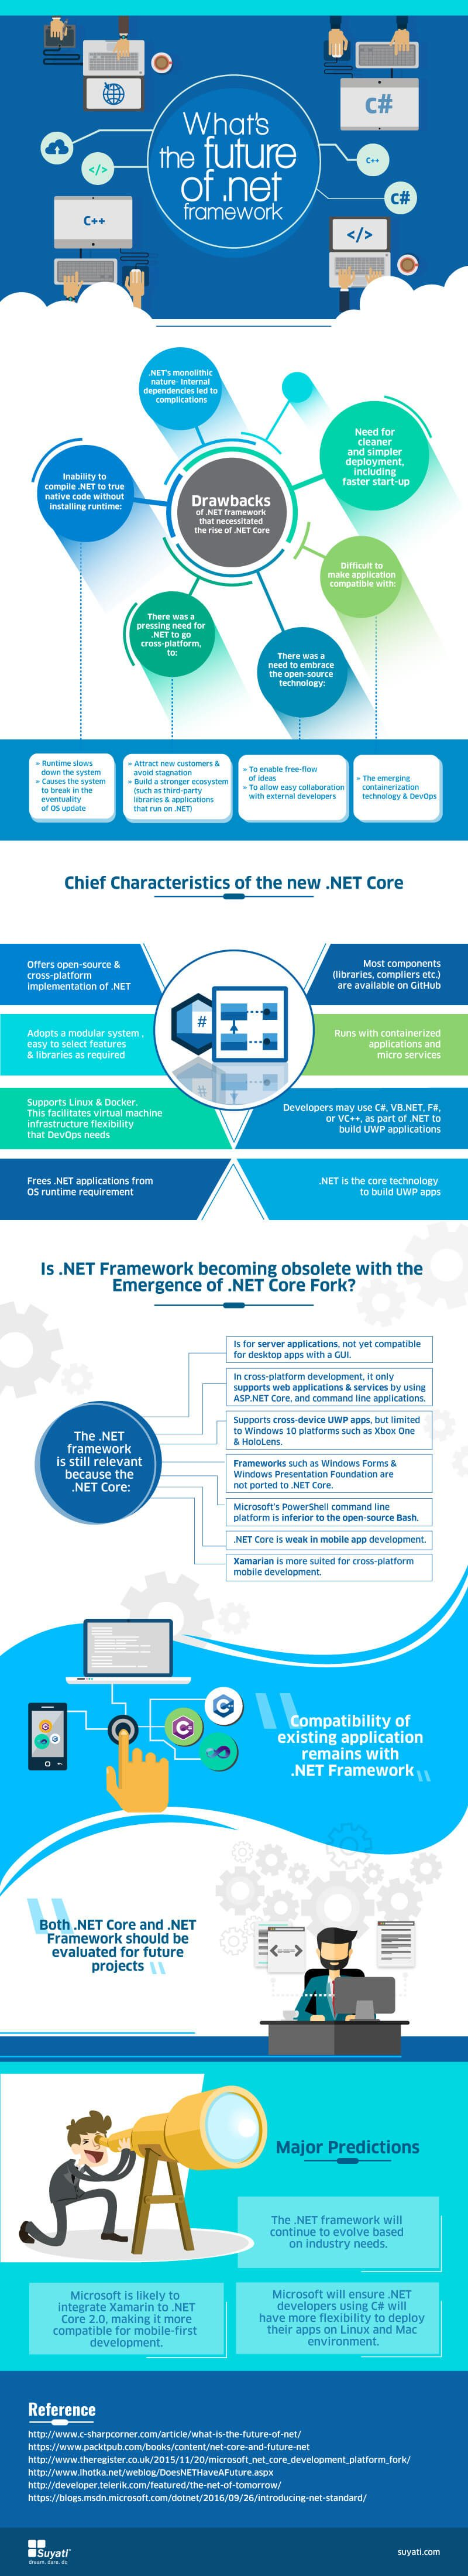 What's the future of .NET framework